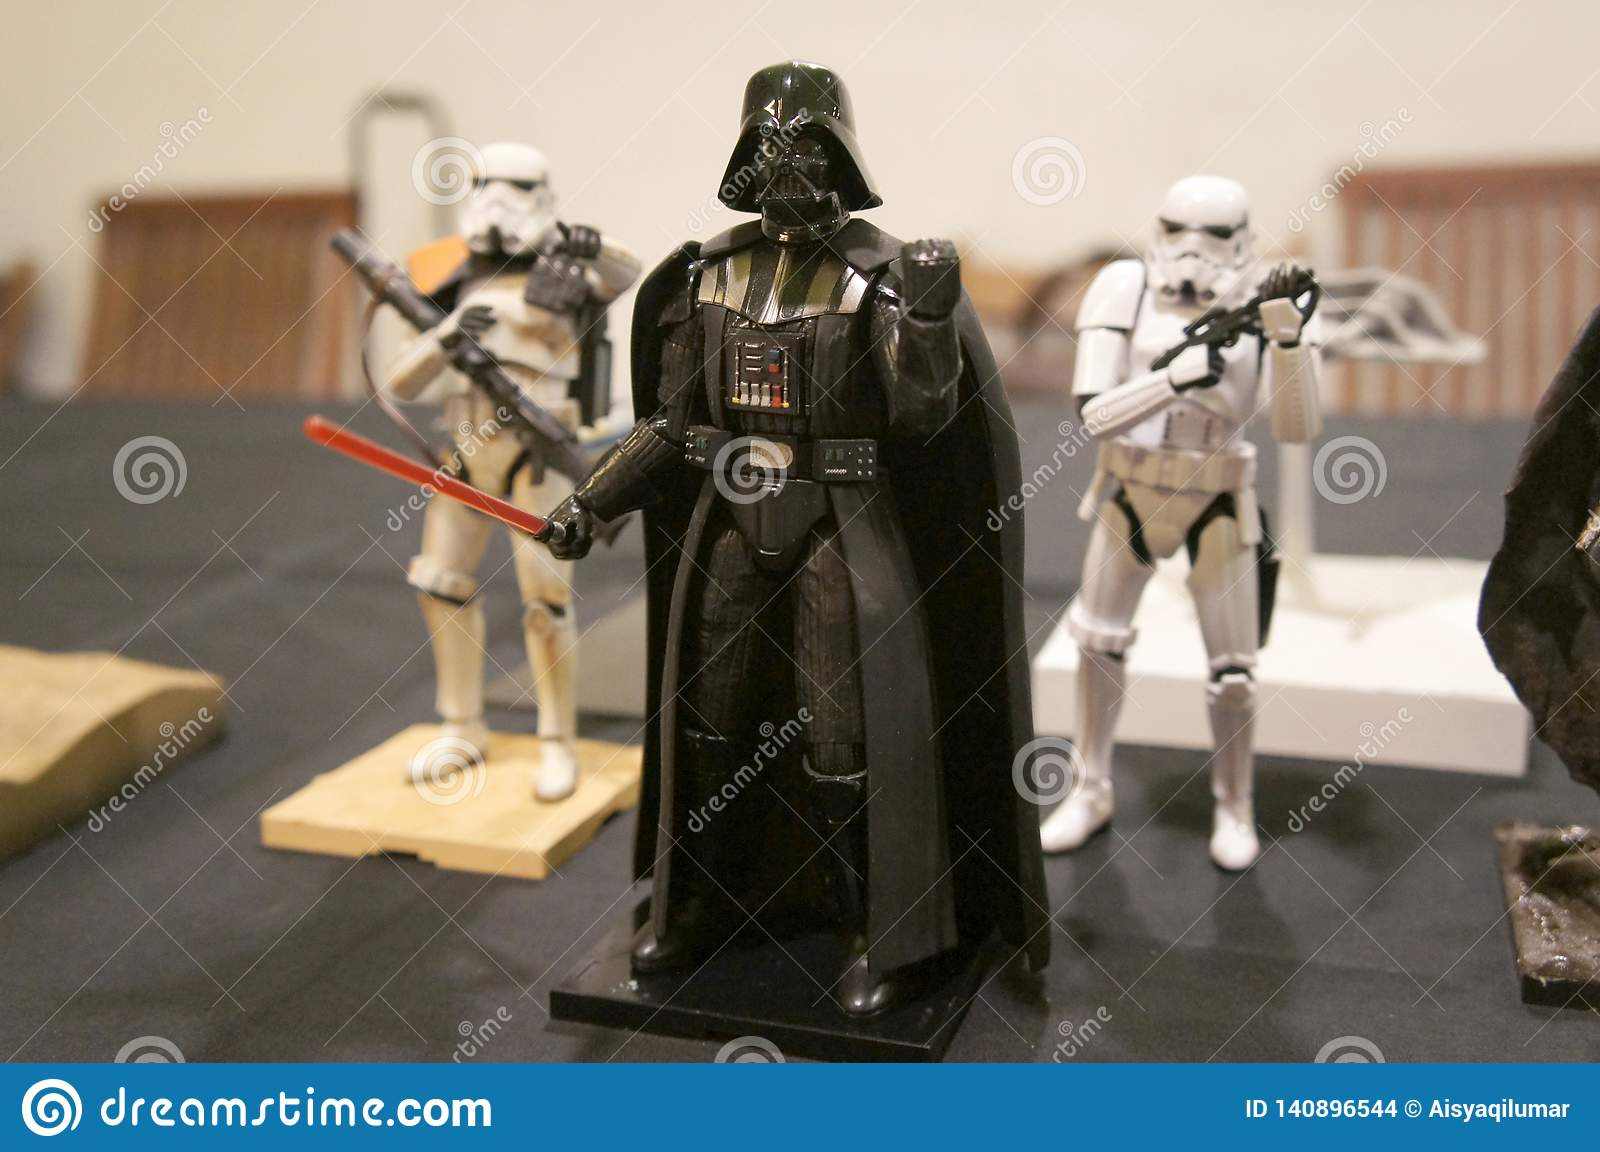 Fictional character action figures of Darth Vader from Star Wars franchise movies